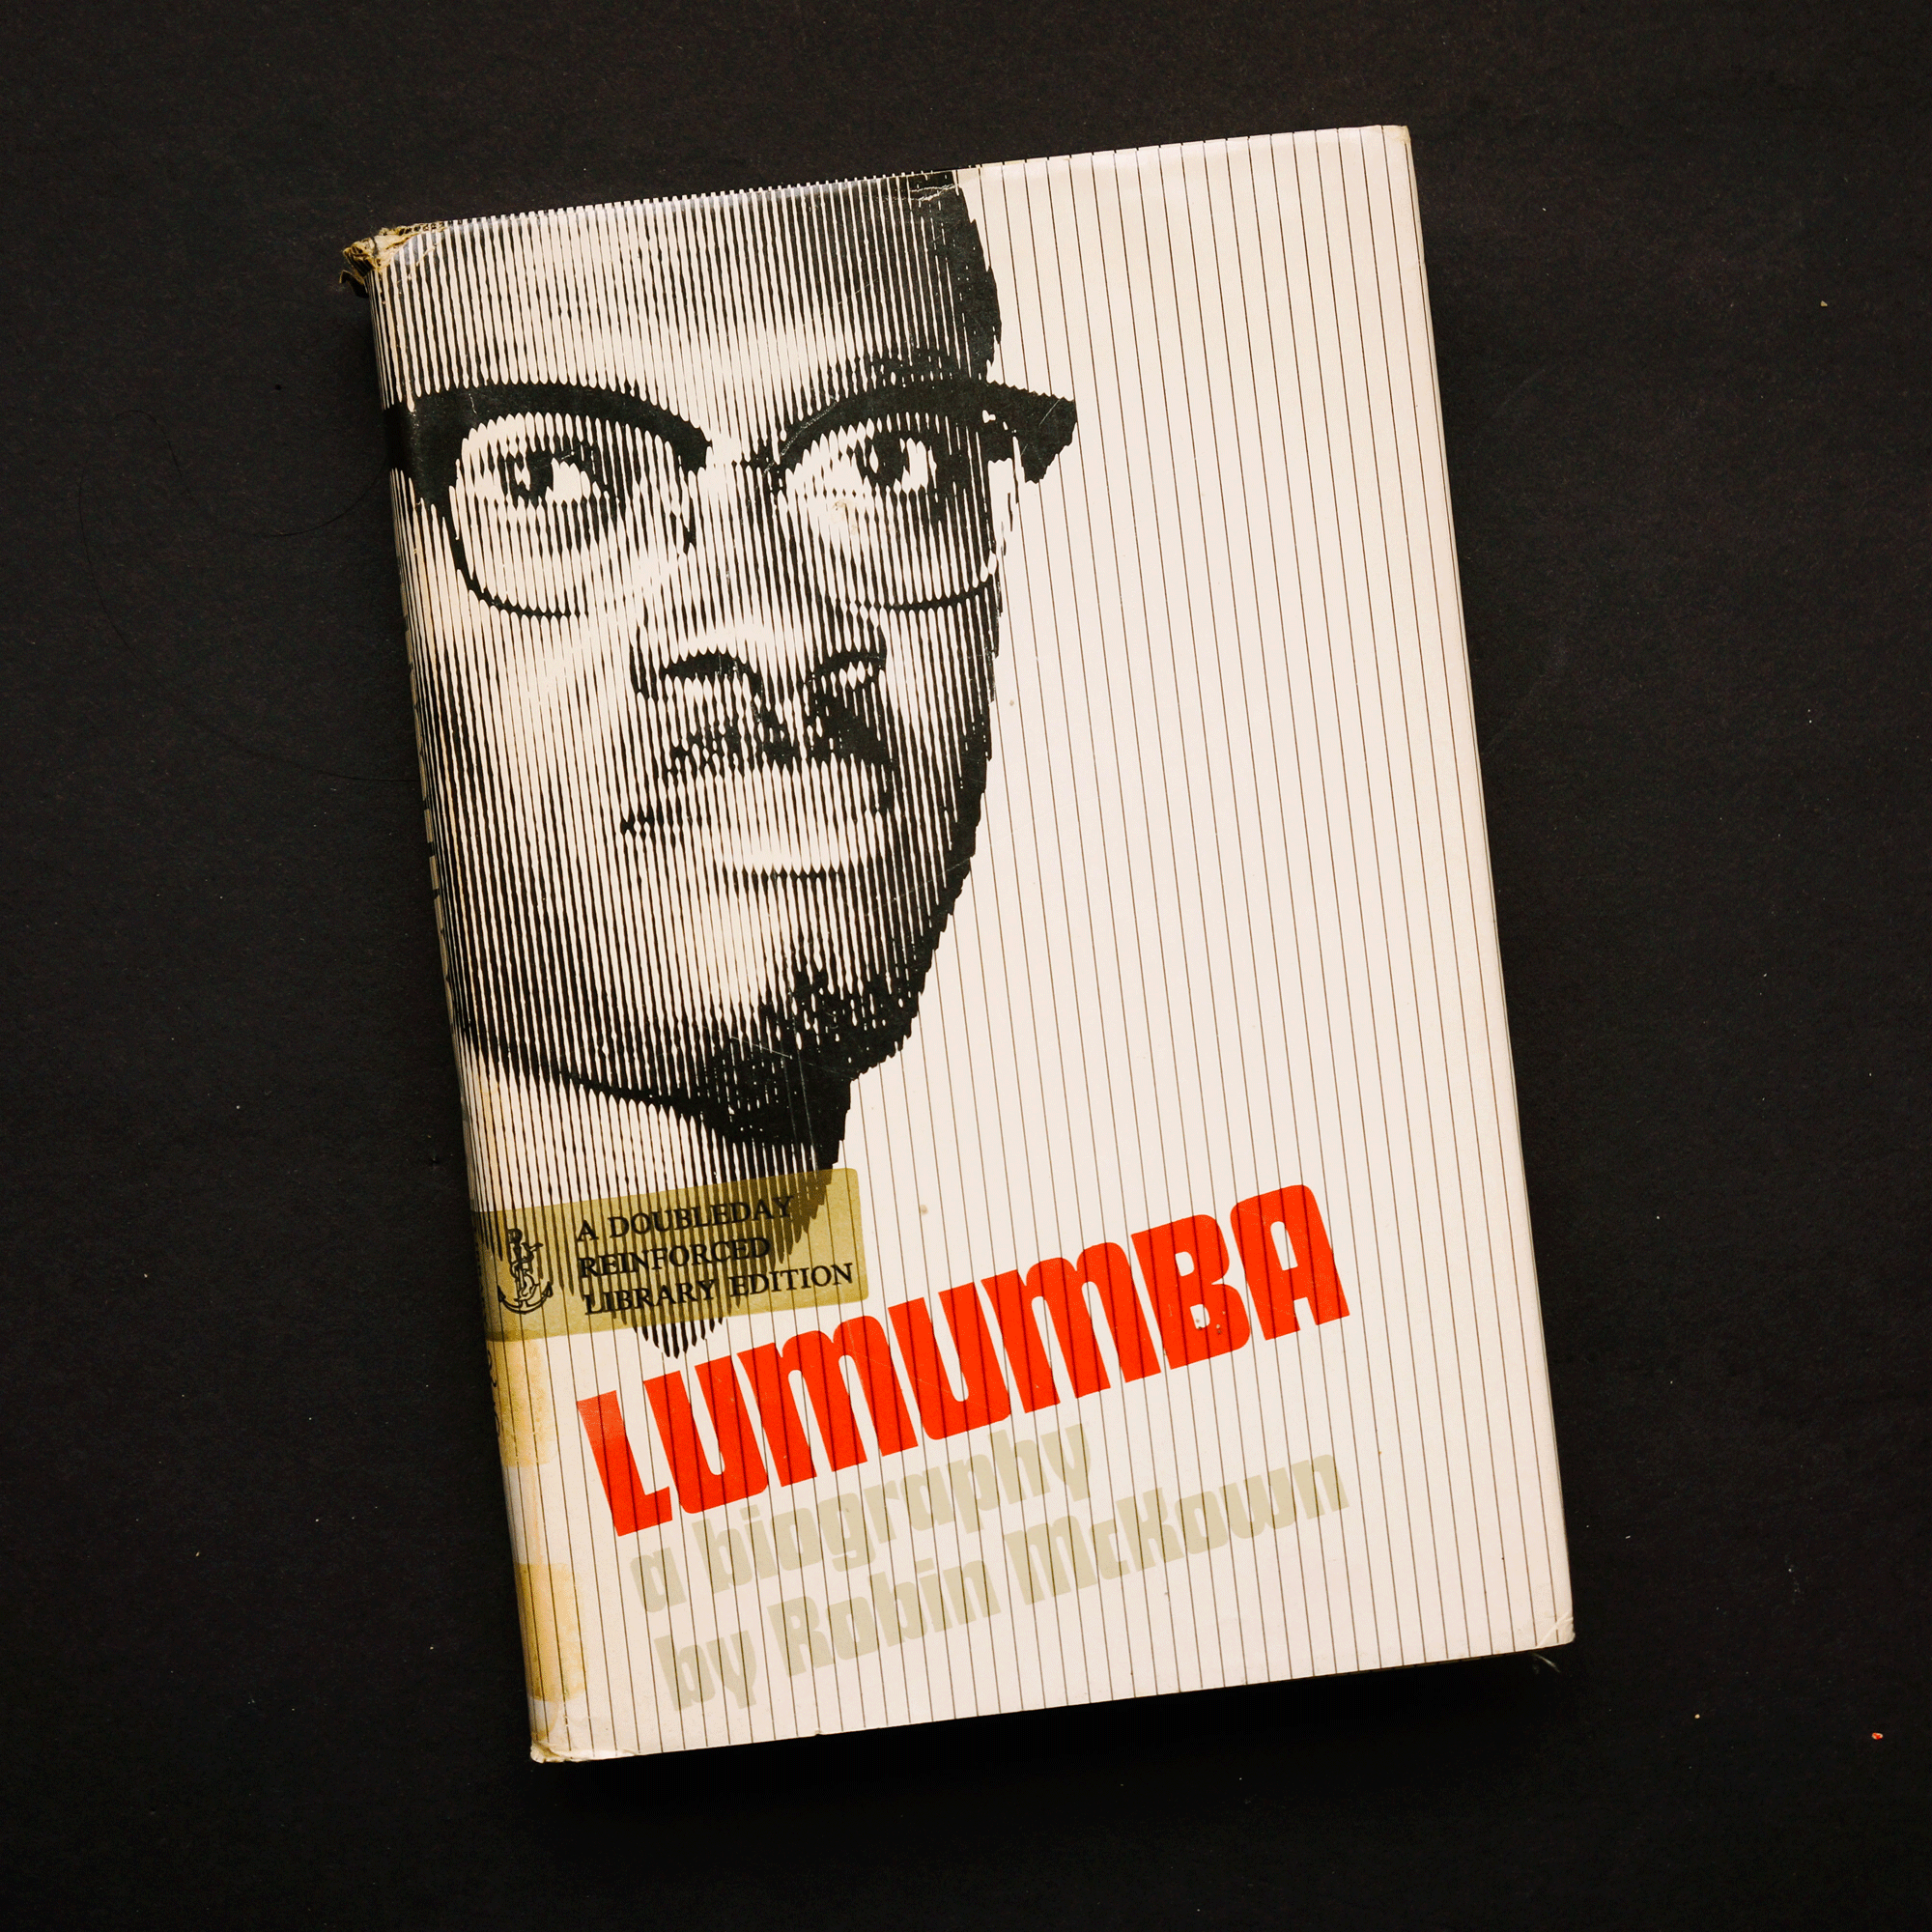 Patrice Émery Lumumba  (alternatively styled  Patrice Hemery Lumumba ) [4]  (2 July 1925 – 17 January 1961) was a Congolese independence leader and the first democratically elected prime minister of Congo. Lumumba played an important role for his country to be granted independence from  Belgium , as a founder and leader of the mainstream   Mouvement National Congolais   (MNC) party,  Shortly after Congolese independence in 1960, a mutiny broke out in the army, marking the beginning of the  Congo Crisis . Lumumba appealed to the  United States  and the  United Nations  for assistance to suppress the Belgian-supported  Katangan secessionists . Both parties refused, so Lumumba turned to the Soviet Union for support. This led to growing differences with President  Joseph Kasa-Vubu  and chief-of-staff  Joseph-Désiré Mobutu , as well as the foreign opposition of the United States and  Belgium . Lumumba was subsequently imprisoned by state authorities under Mobutu and executed by a firing squad under the command of Katangan authorities. The United Nations, which he had asked to come to the Congo, did not intervene to save him. Belgium, the United Kingdom, and the United States have all been accused of involvement in Lumumba's death. In 2002 Belgium recognised its involvement in the killing and apologised to Lumumba's family and the people of Congo. In 2014, the United States also recognised the CIA's active involvement.   Get it Here: